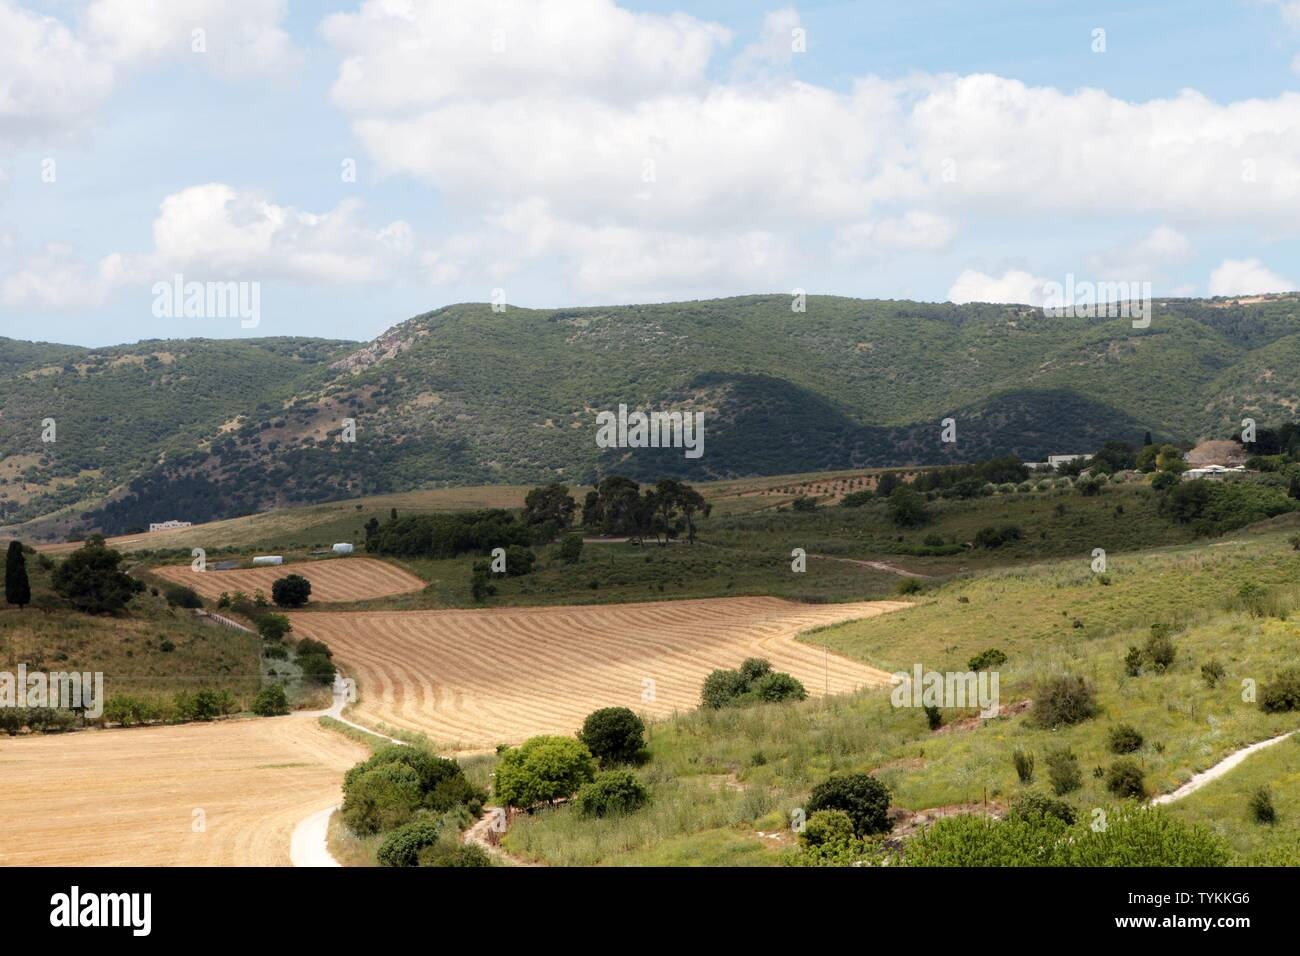 Panorama of the Jezreel Valley landscape, viewed from Mount Precipice. Northern Israel Stock Photo